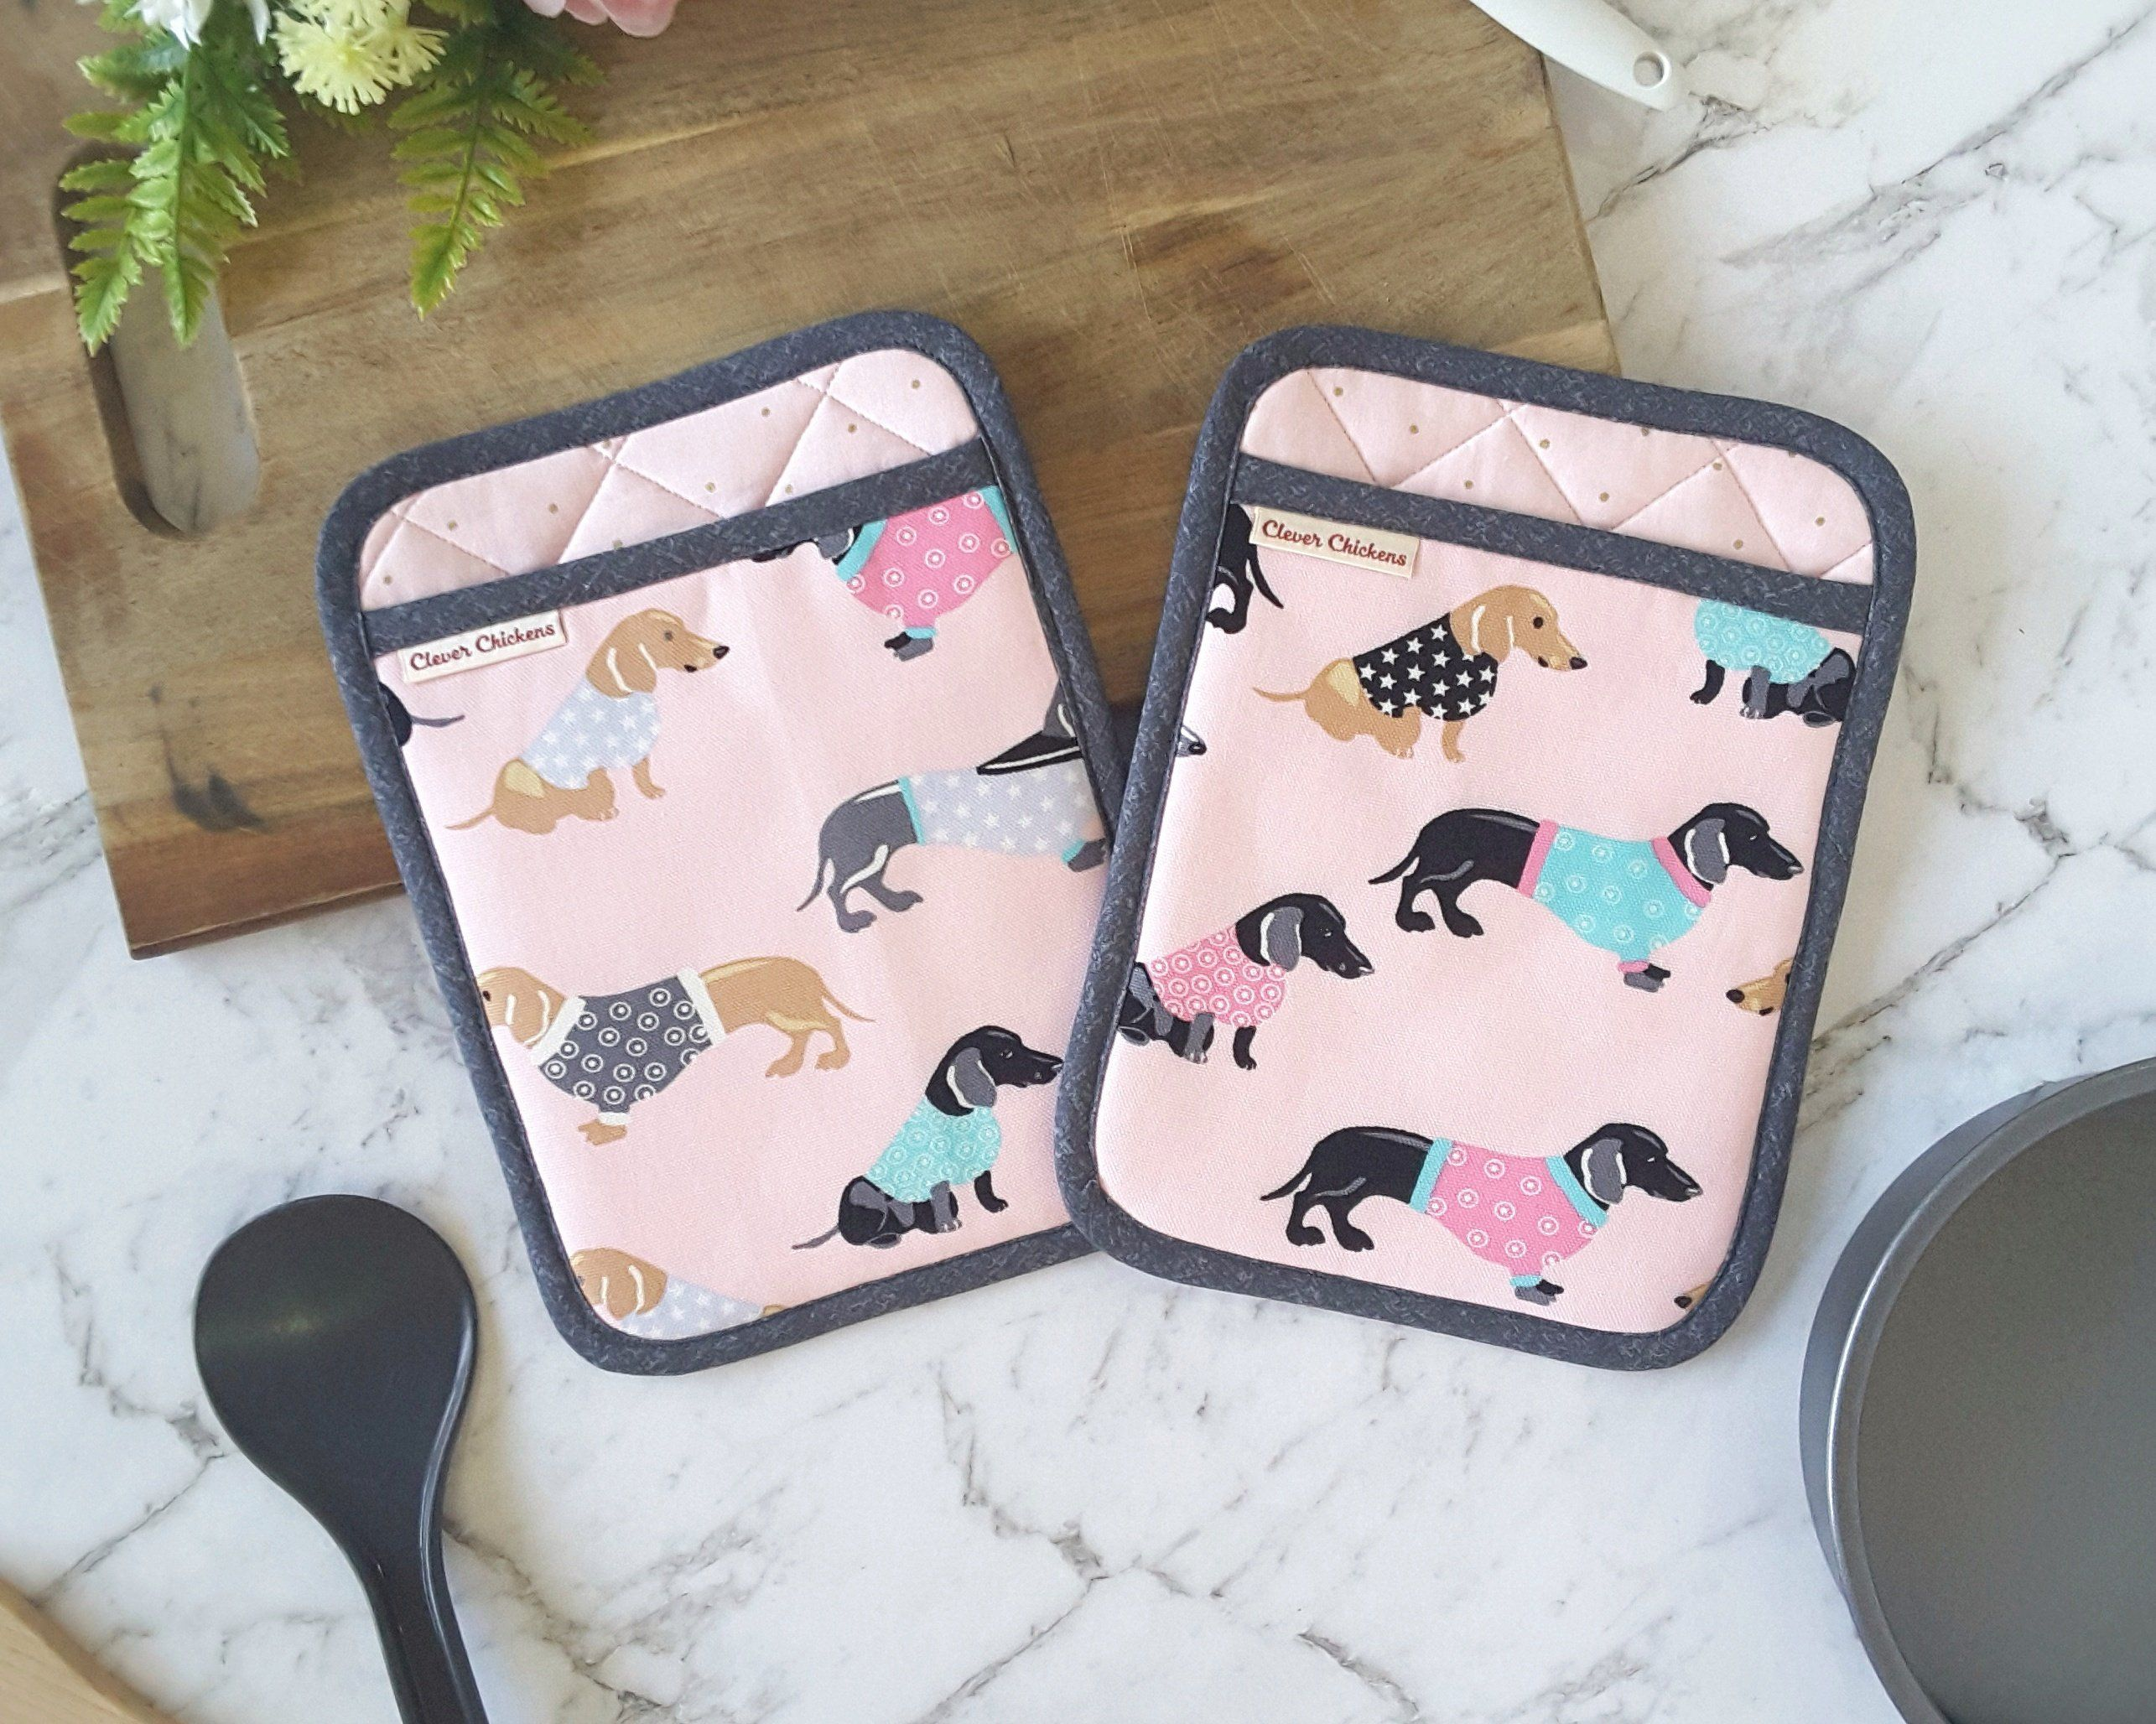 Dachshund Gifts Pink Oven Gloves Dachshund Decor Sausage Dog Cooking Gifts Dachshund Oven Mitt and Hot Pad Set Wiener Dog